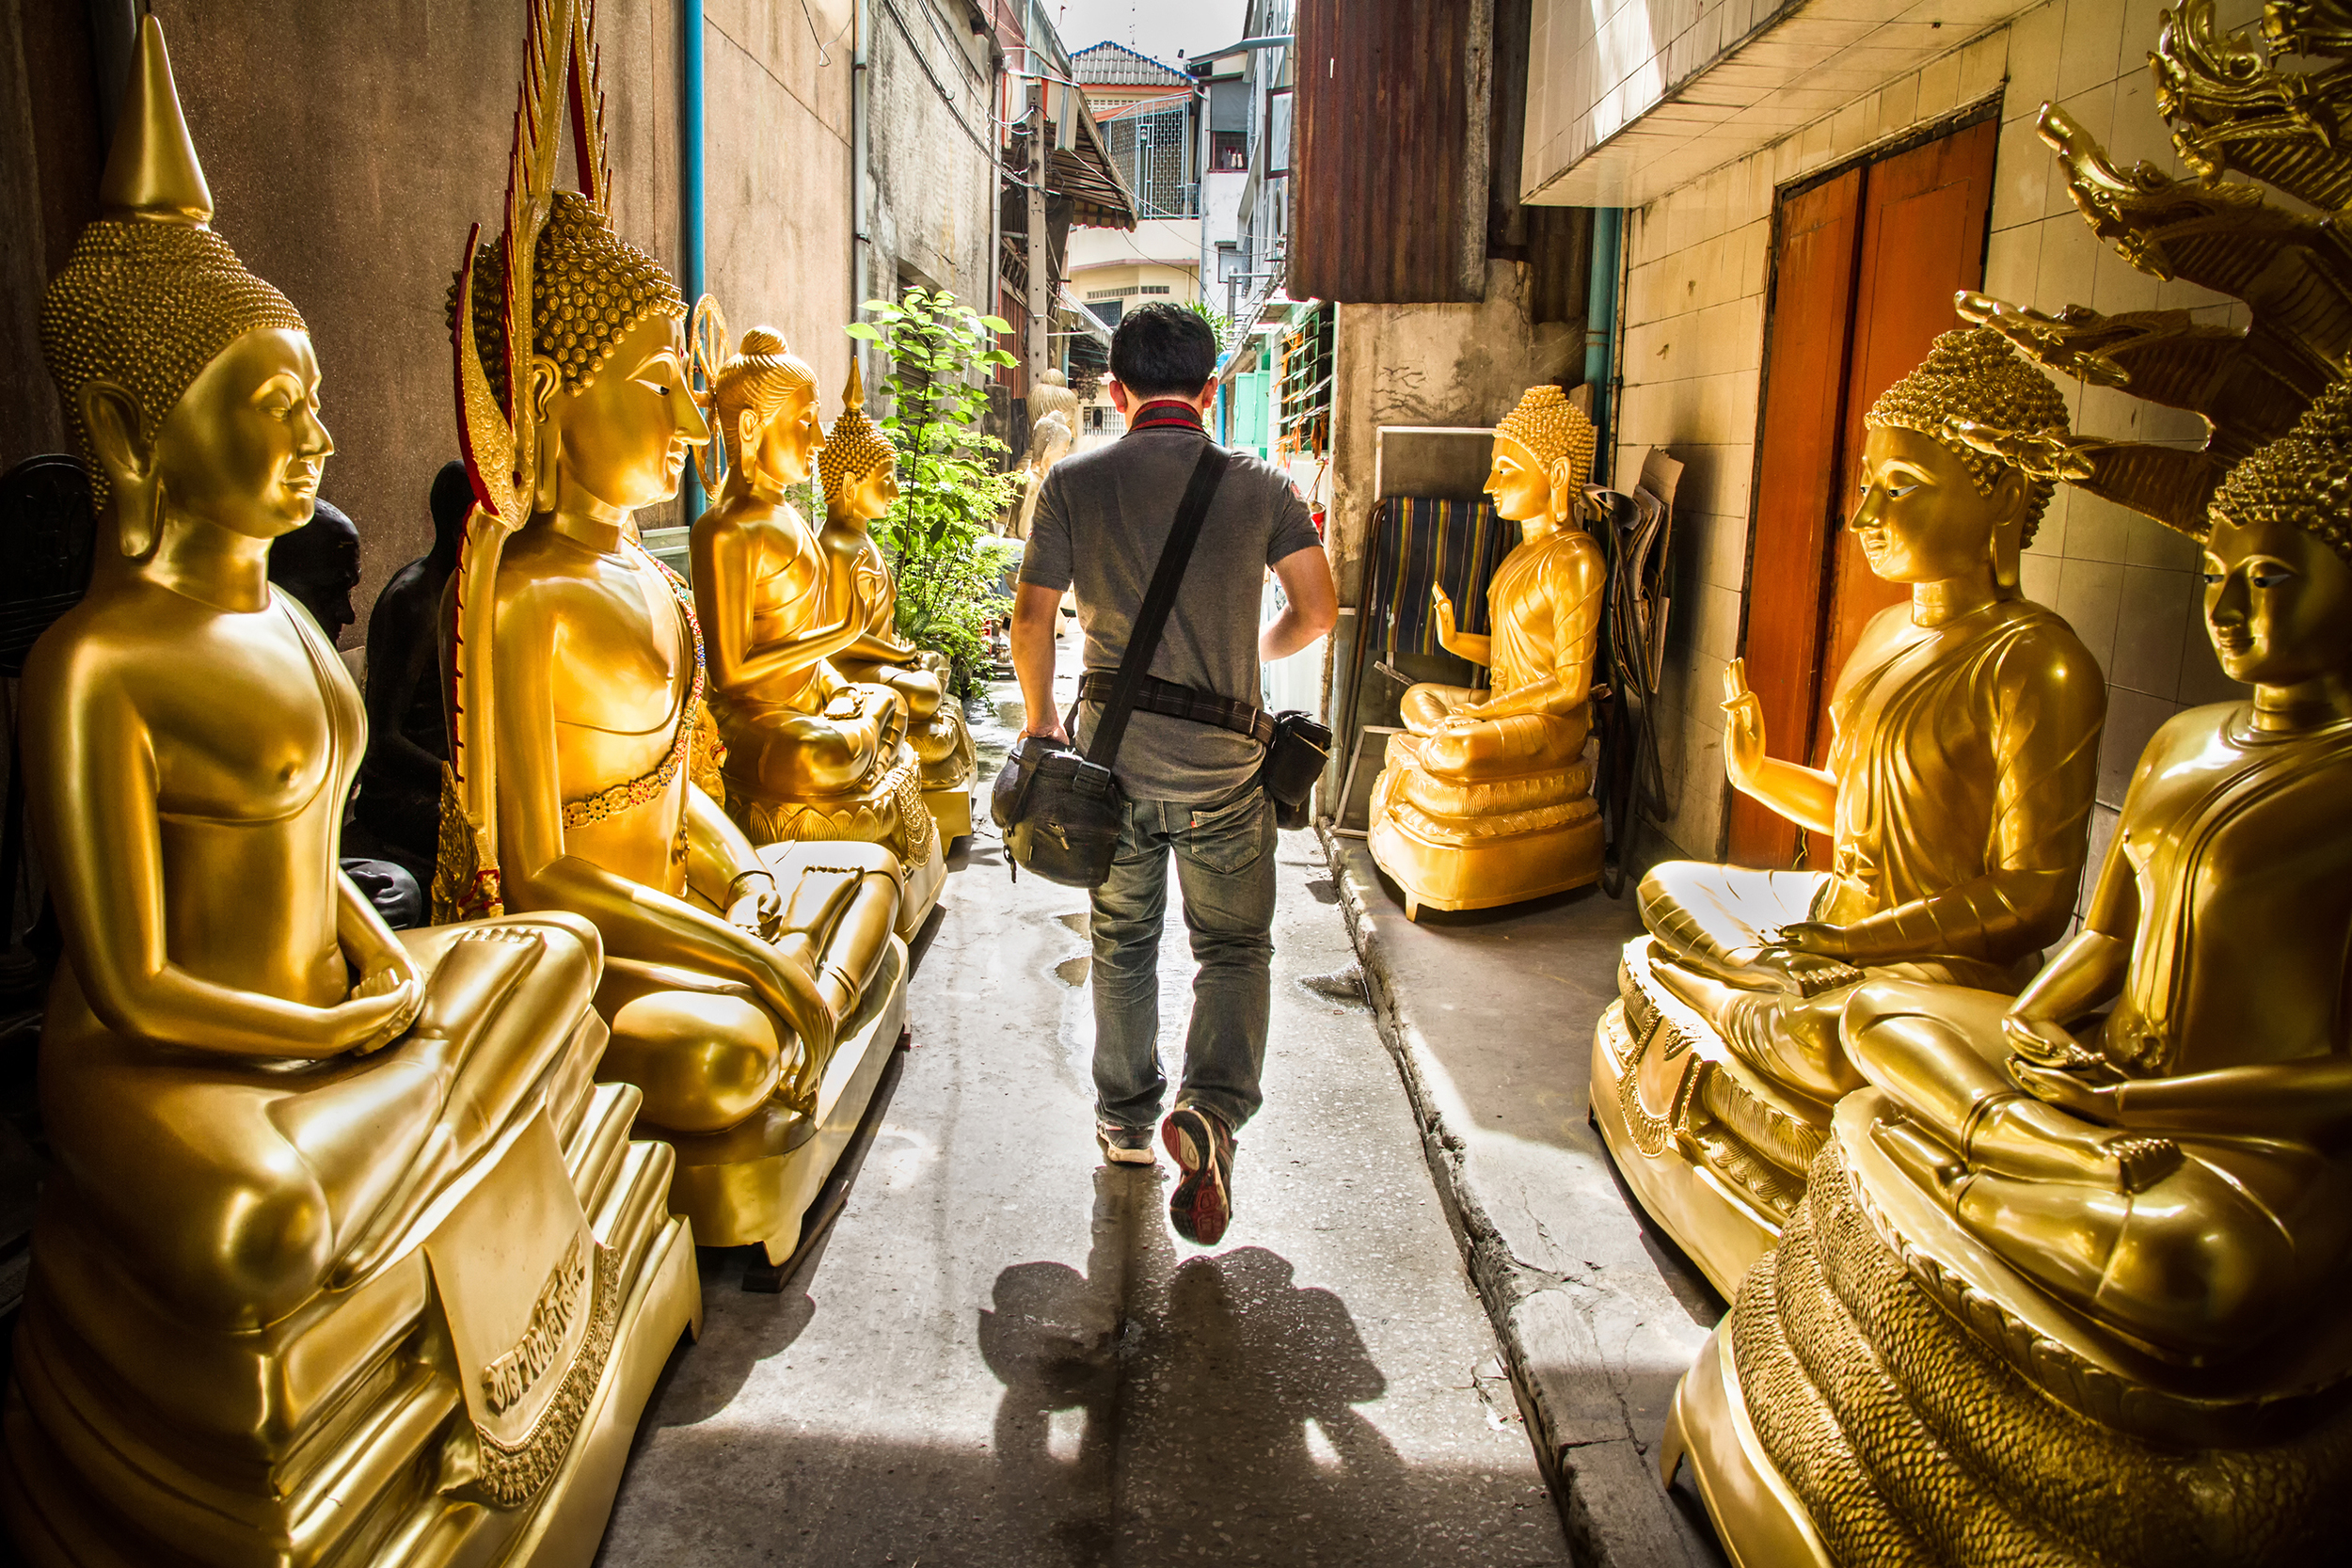 A man walking through the street lined with buddhas